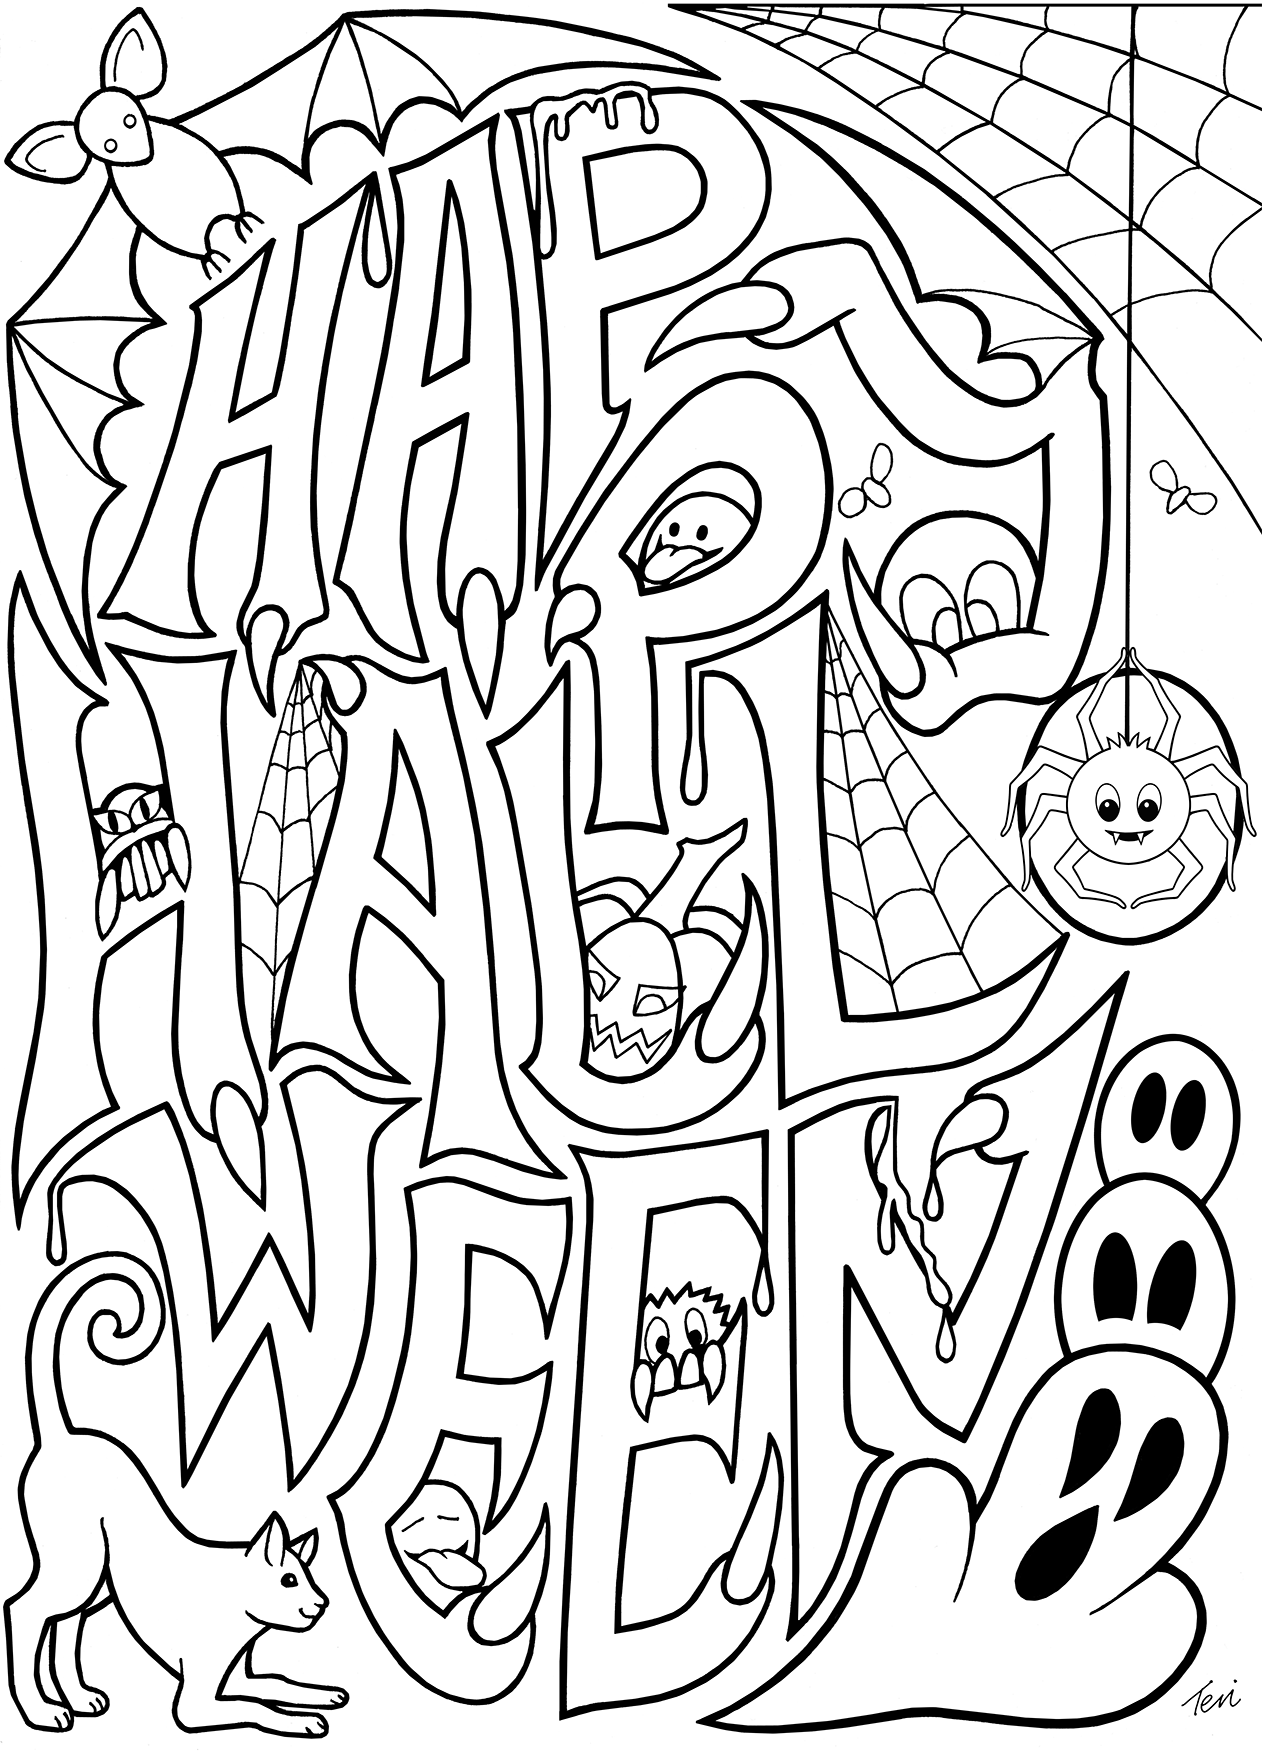 Free adult coloring book pages happy halloween by blue for Happy halloween coloring pages printable